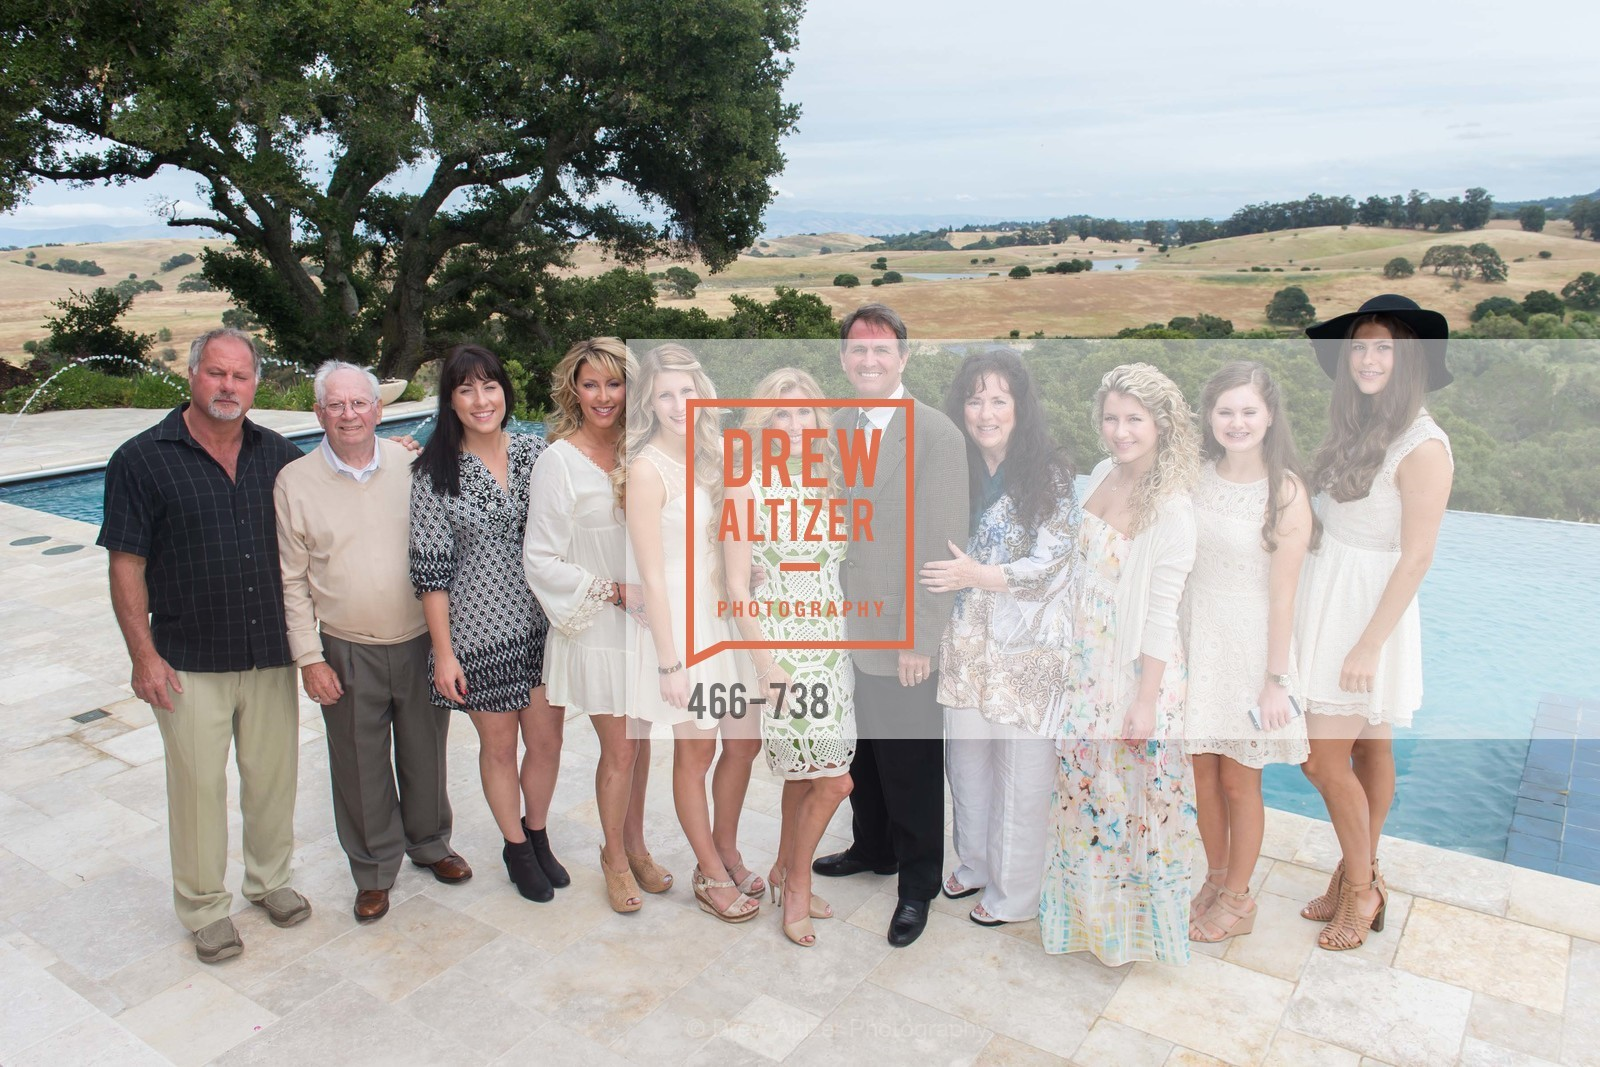 Sherry Cagan, Laird Cagan, Kiana Cagan, Kyla Cagan, LymeAid 2015, US, May 17th, 2015,Drew Altizer, Drew Altizer Photography, full-service agency, private events, San Francisco photographer, photographer california